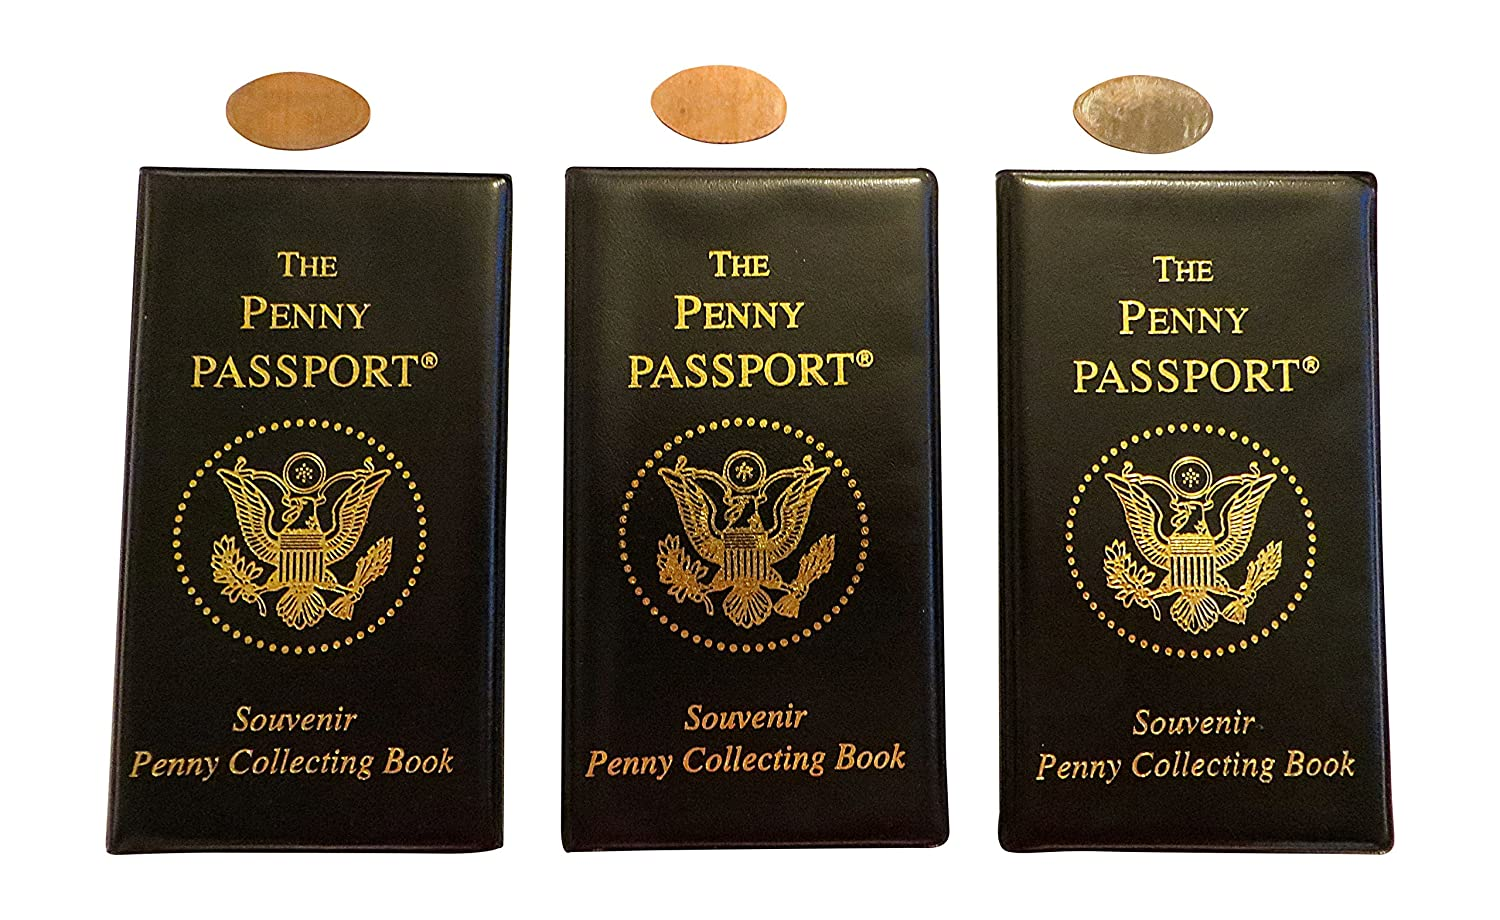 3 Penny Passport Souvenir Elongated Coin Albums With Free Pressed Pennies CTM